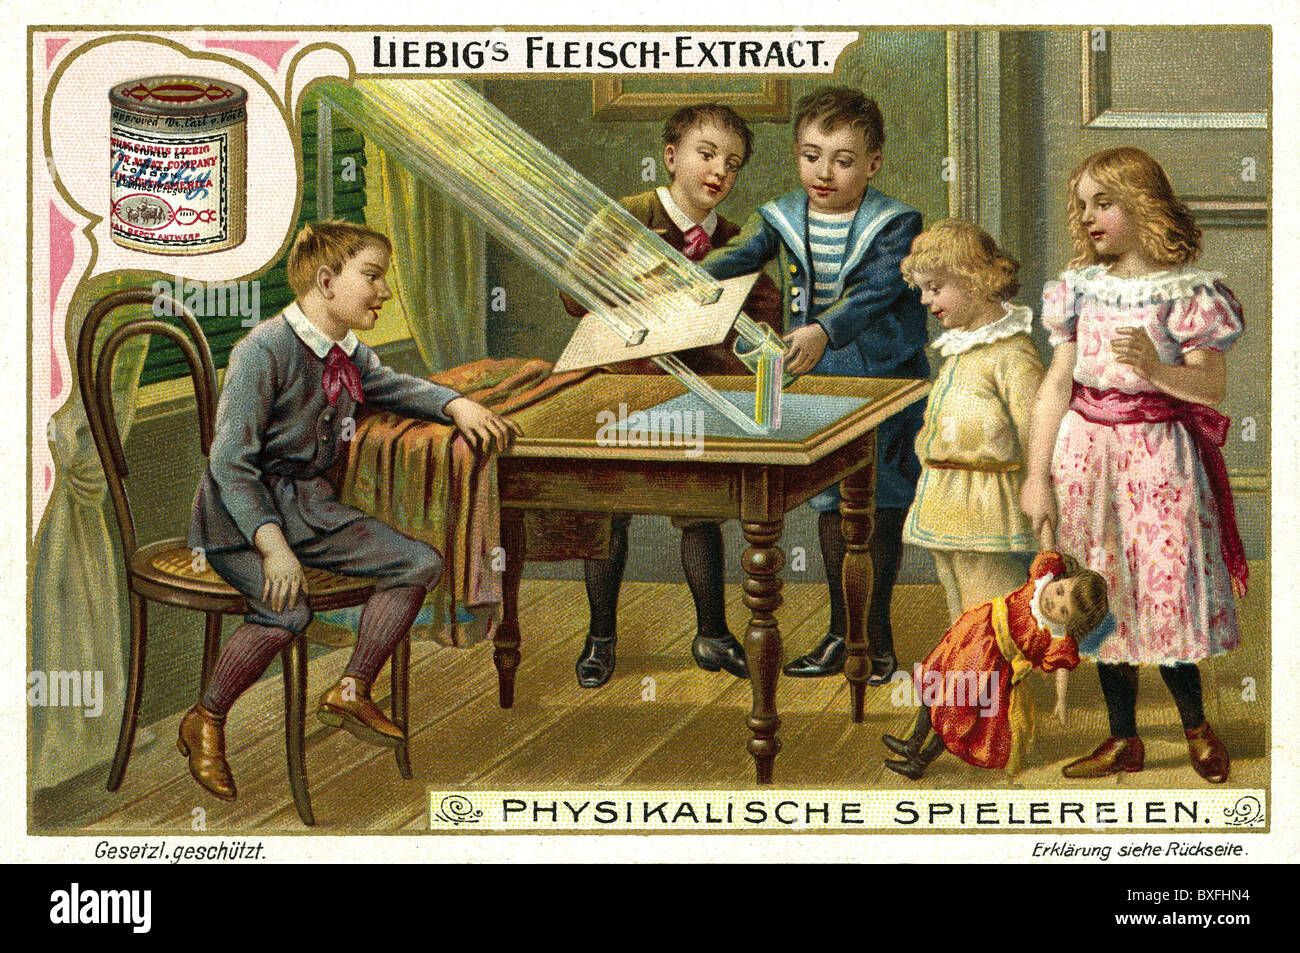 game, children playing and doing a physical experiment with light, lithograph, advertisement, collector's picture, - Stock Image